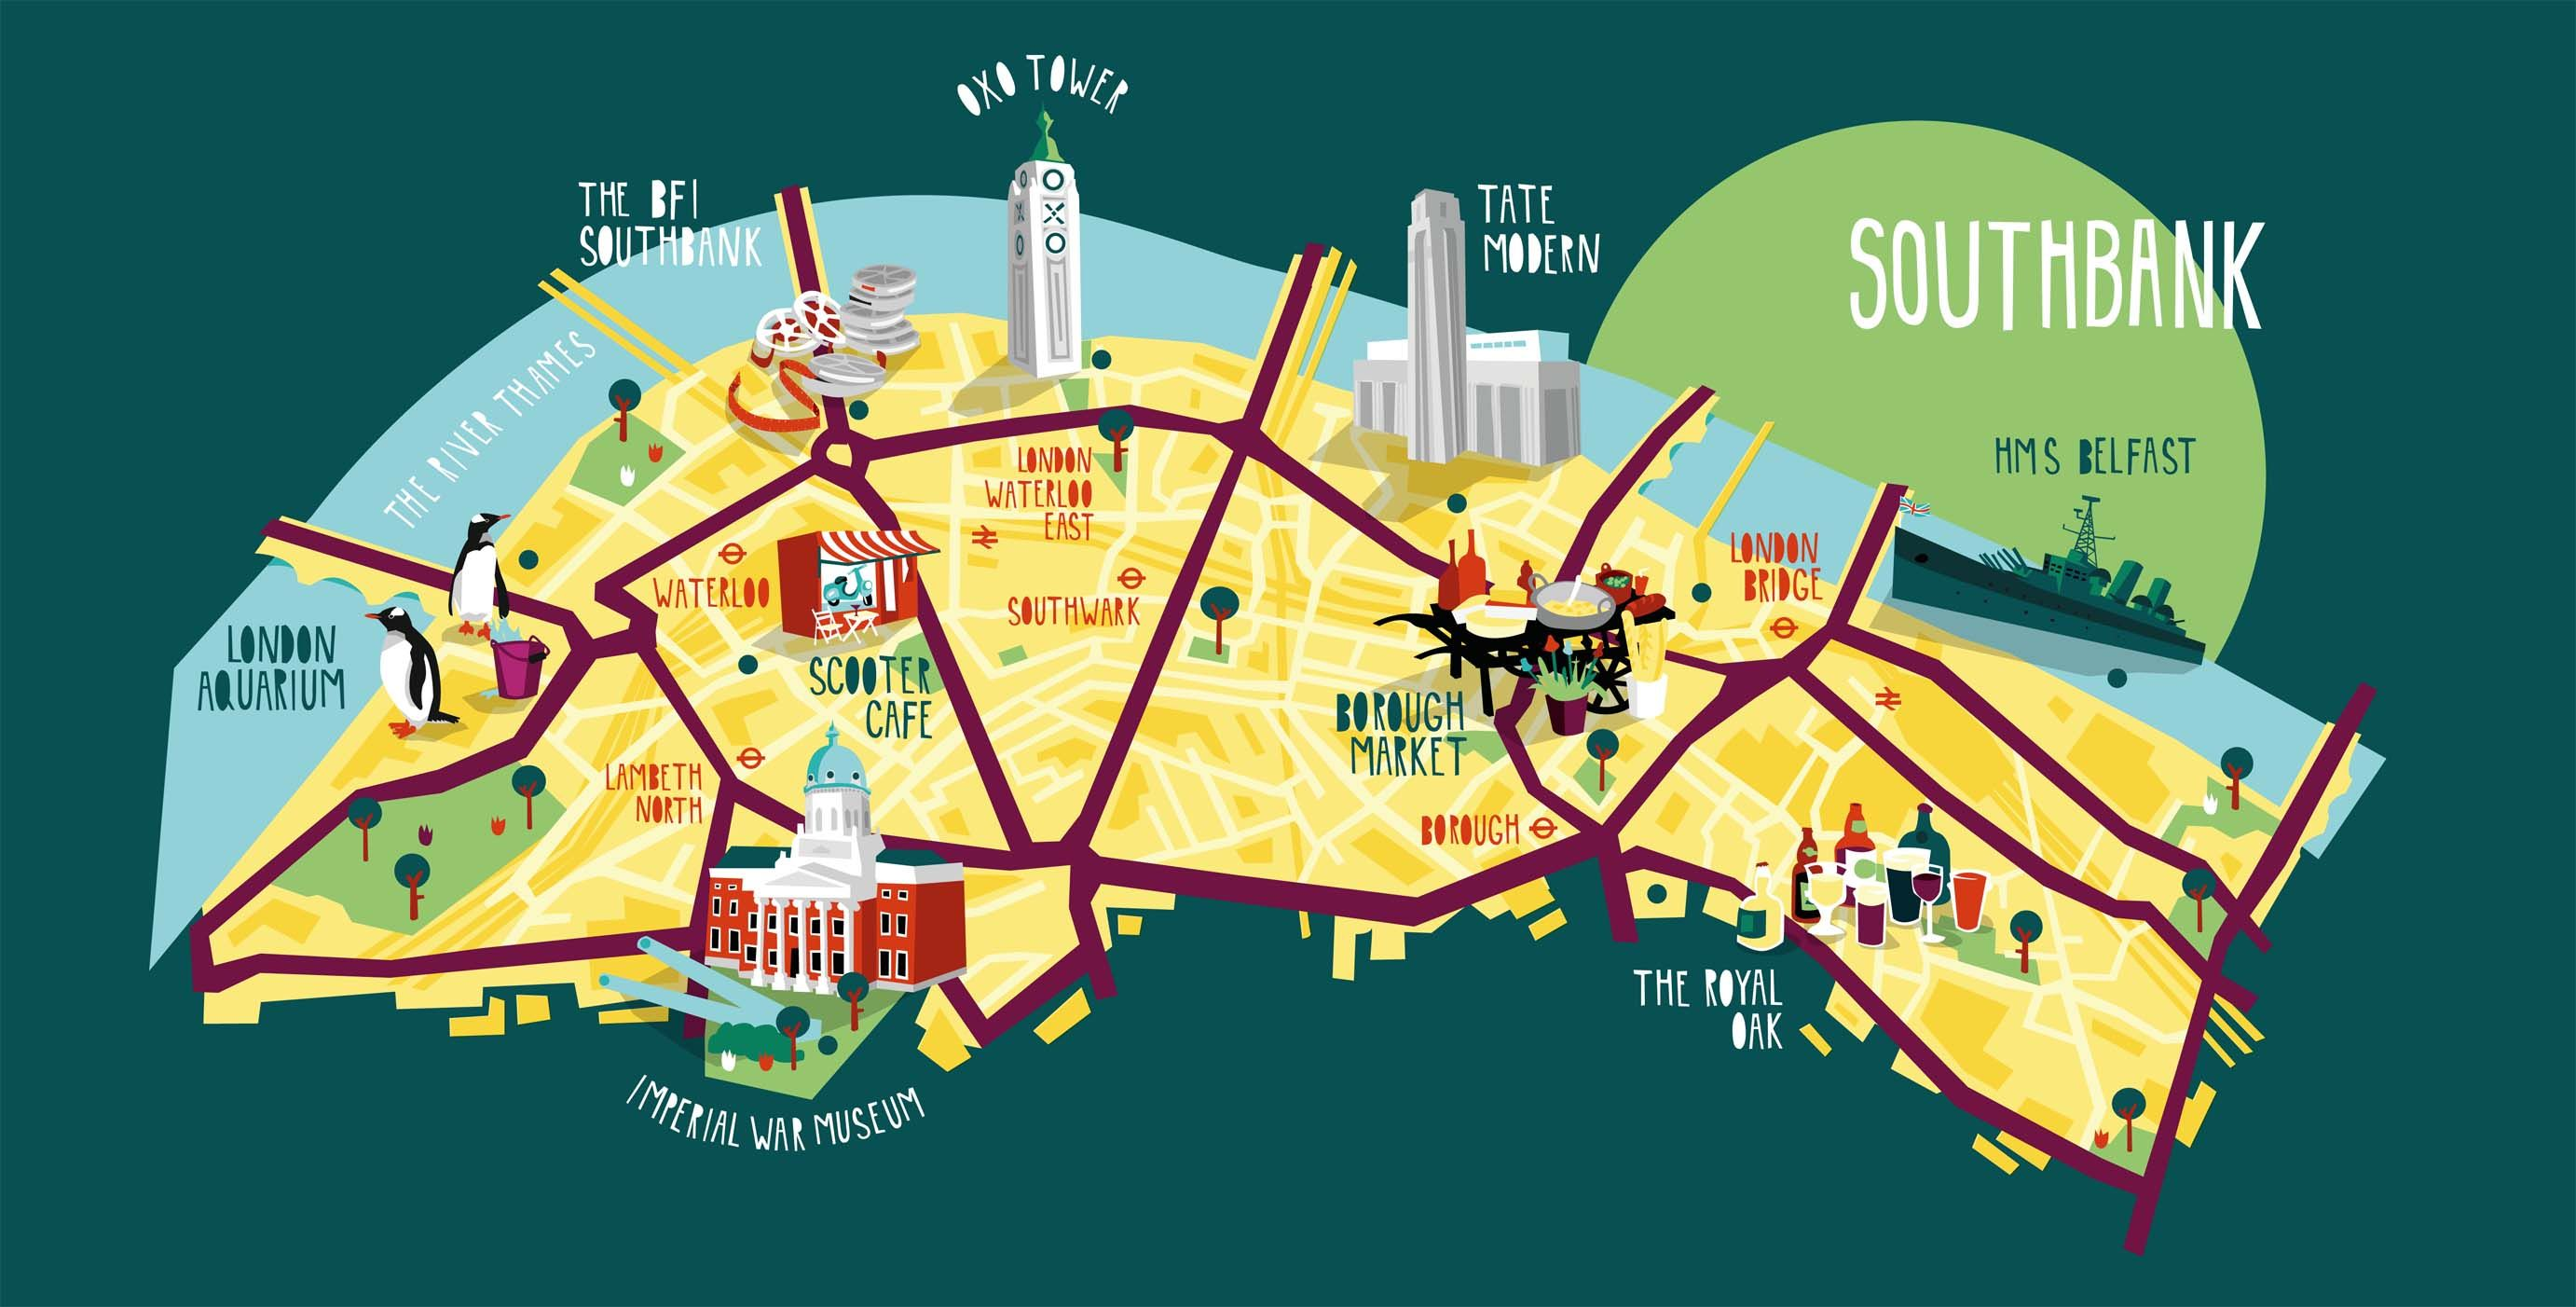 southbank map illustration kerryhyndman